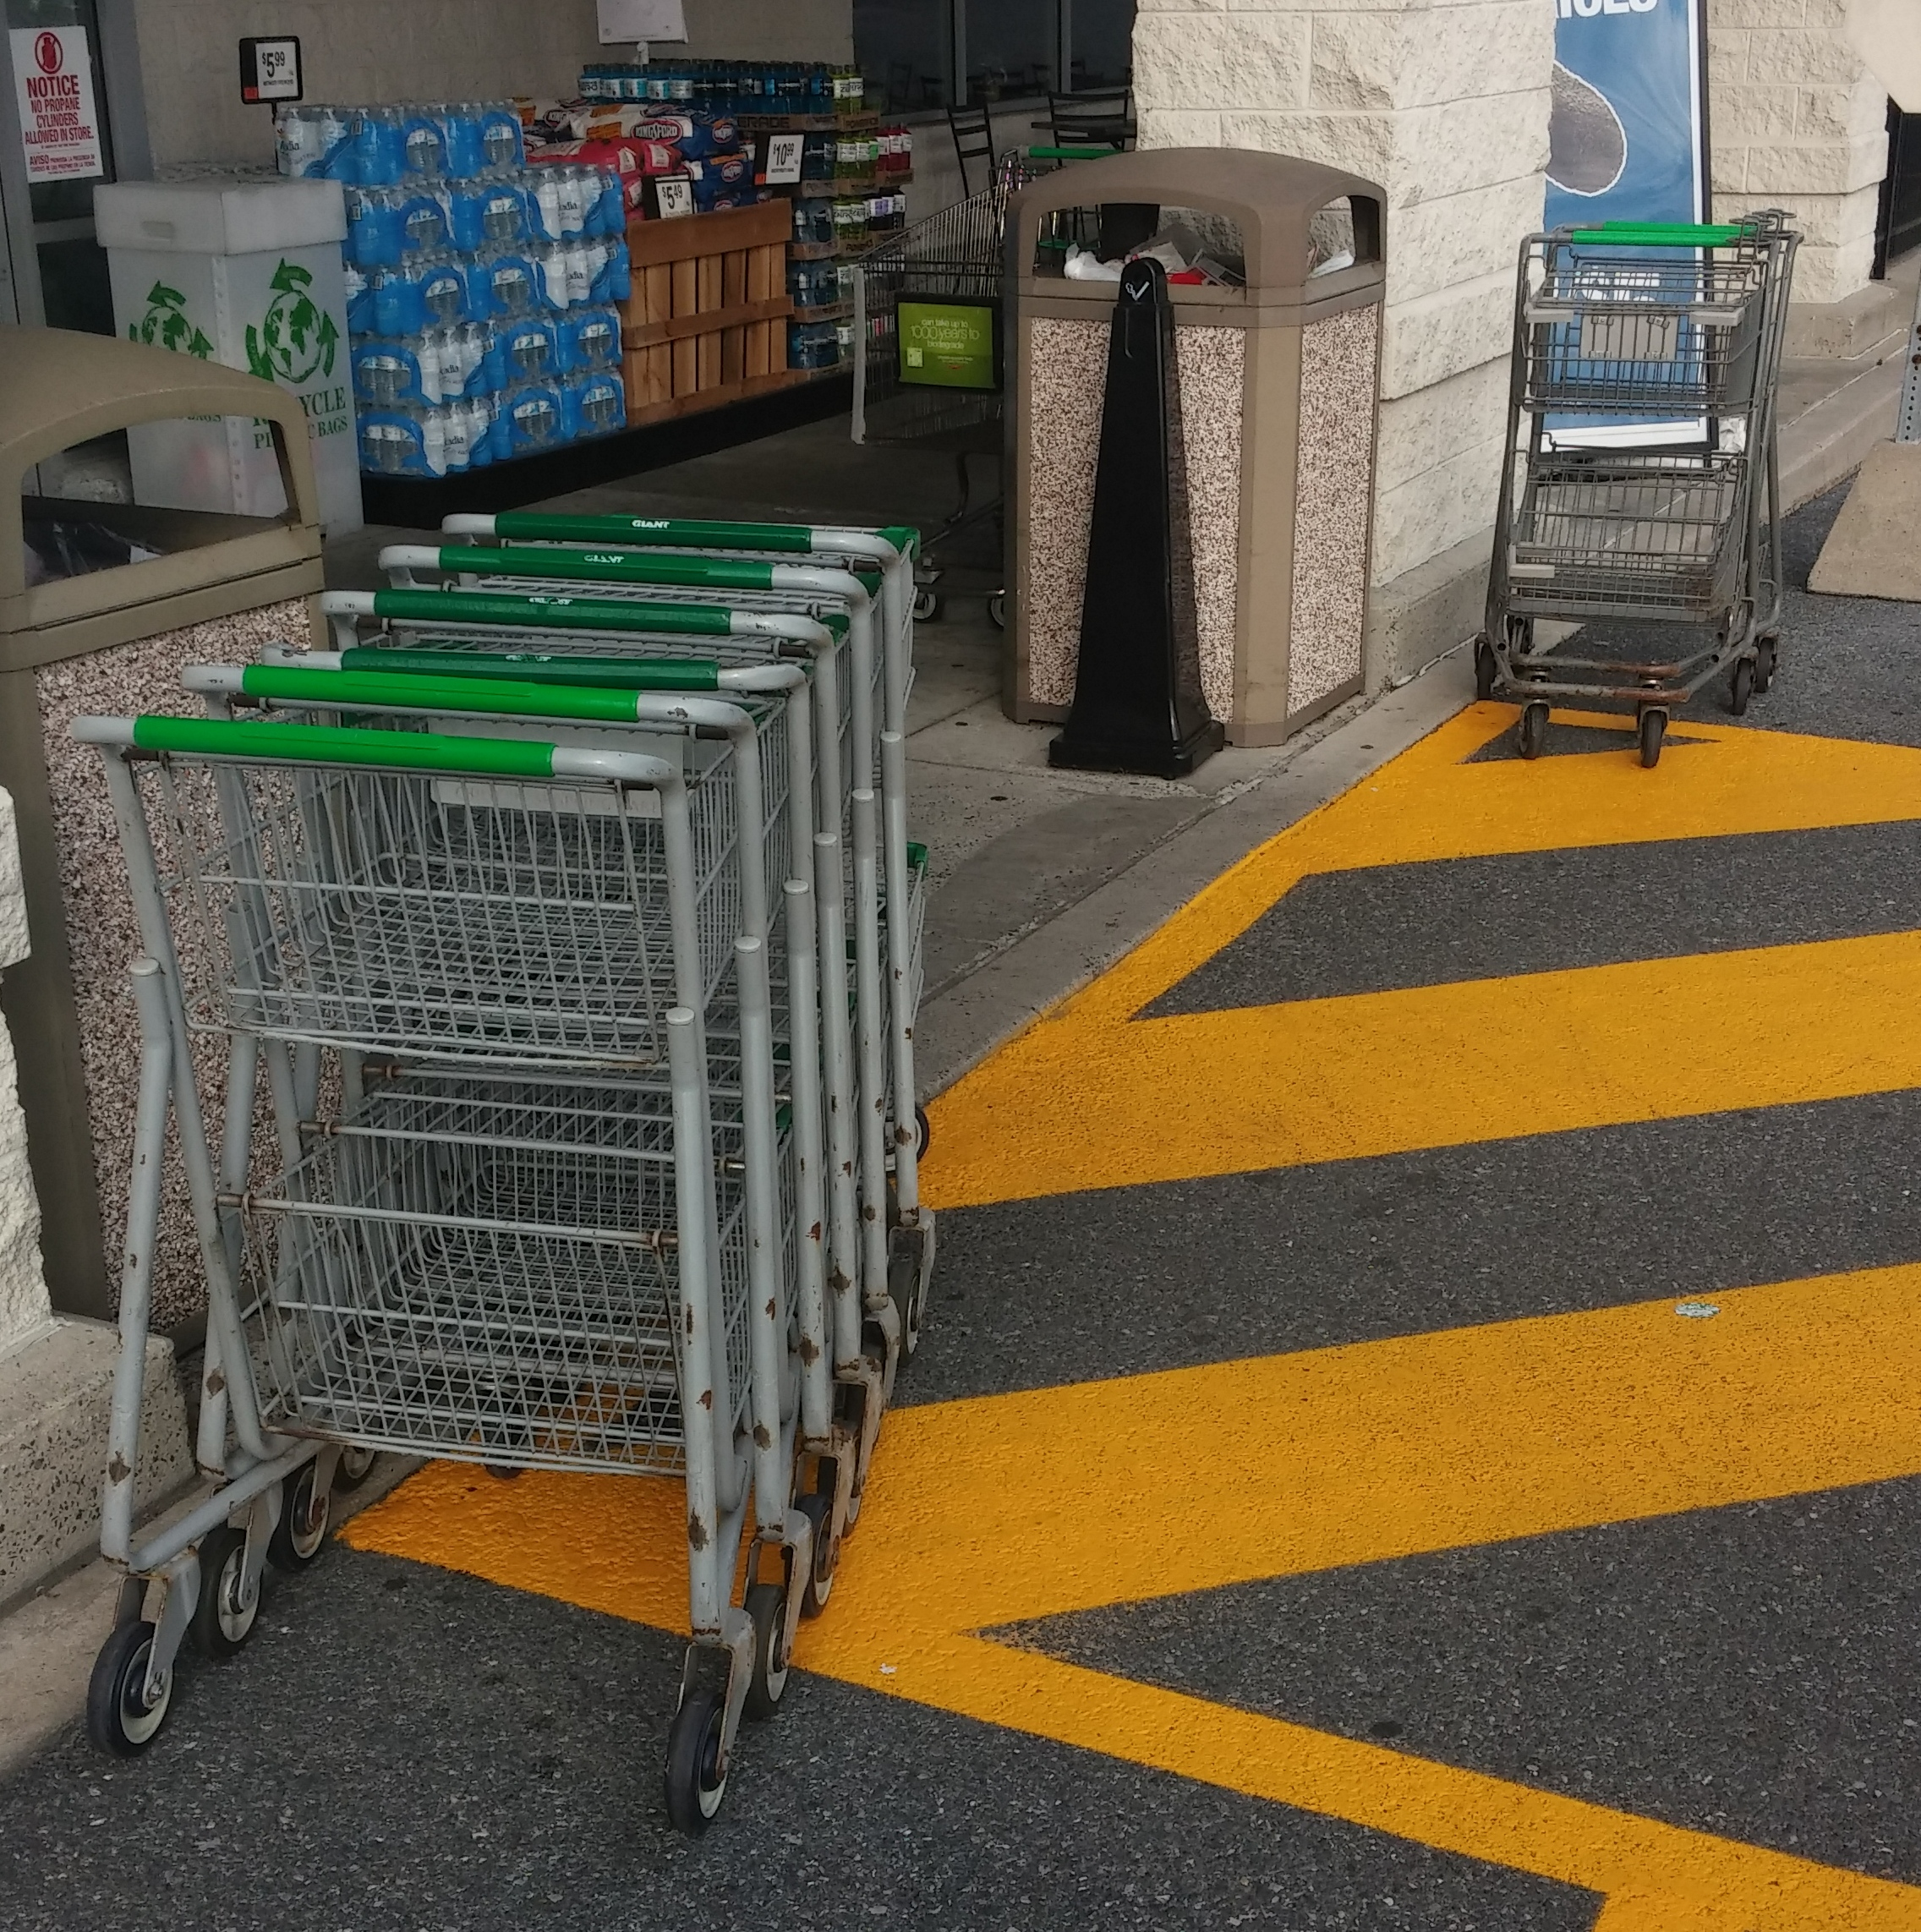 Paul preparing for Masonic Village residents with carts at Giant Food Elizabethtown